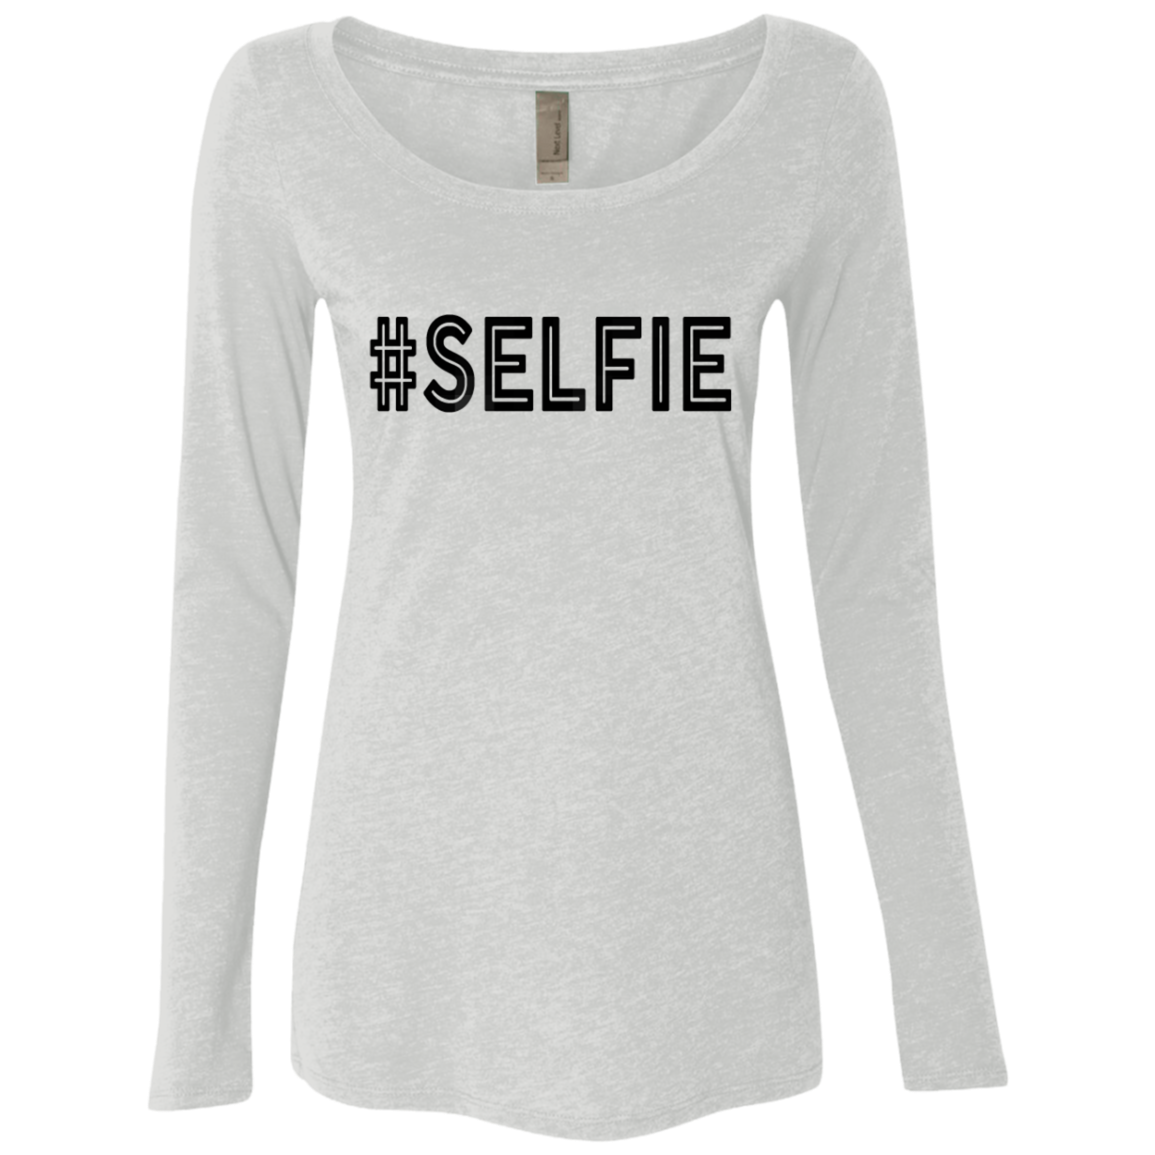 Hashtag Selfie Women's Long Sleeve Tee